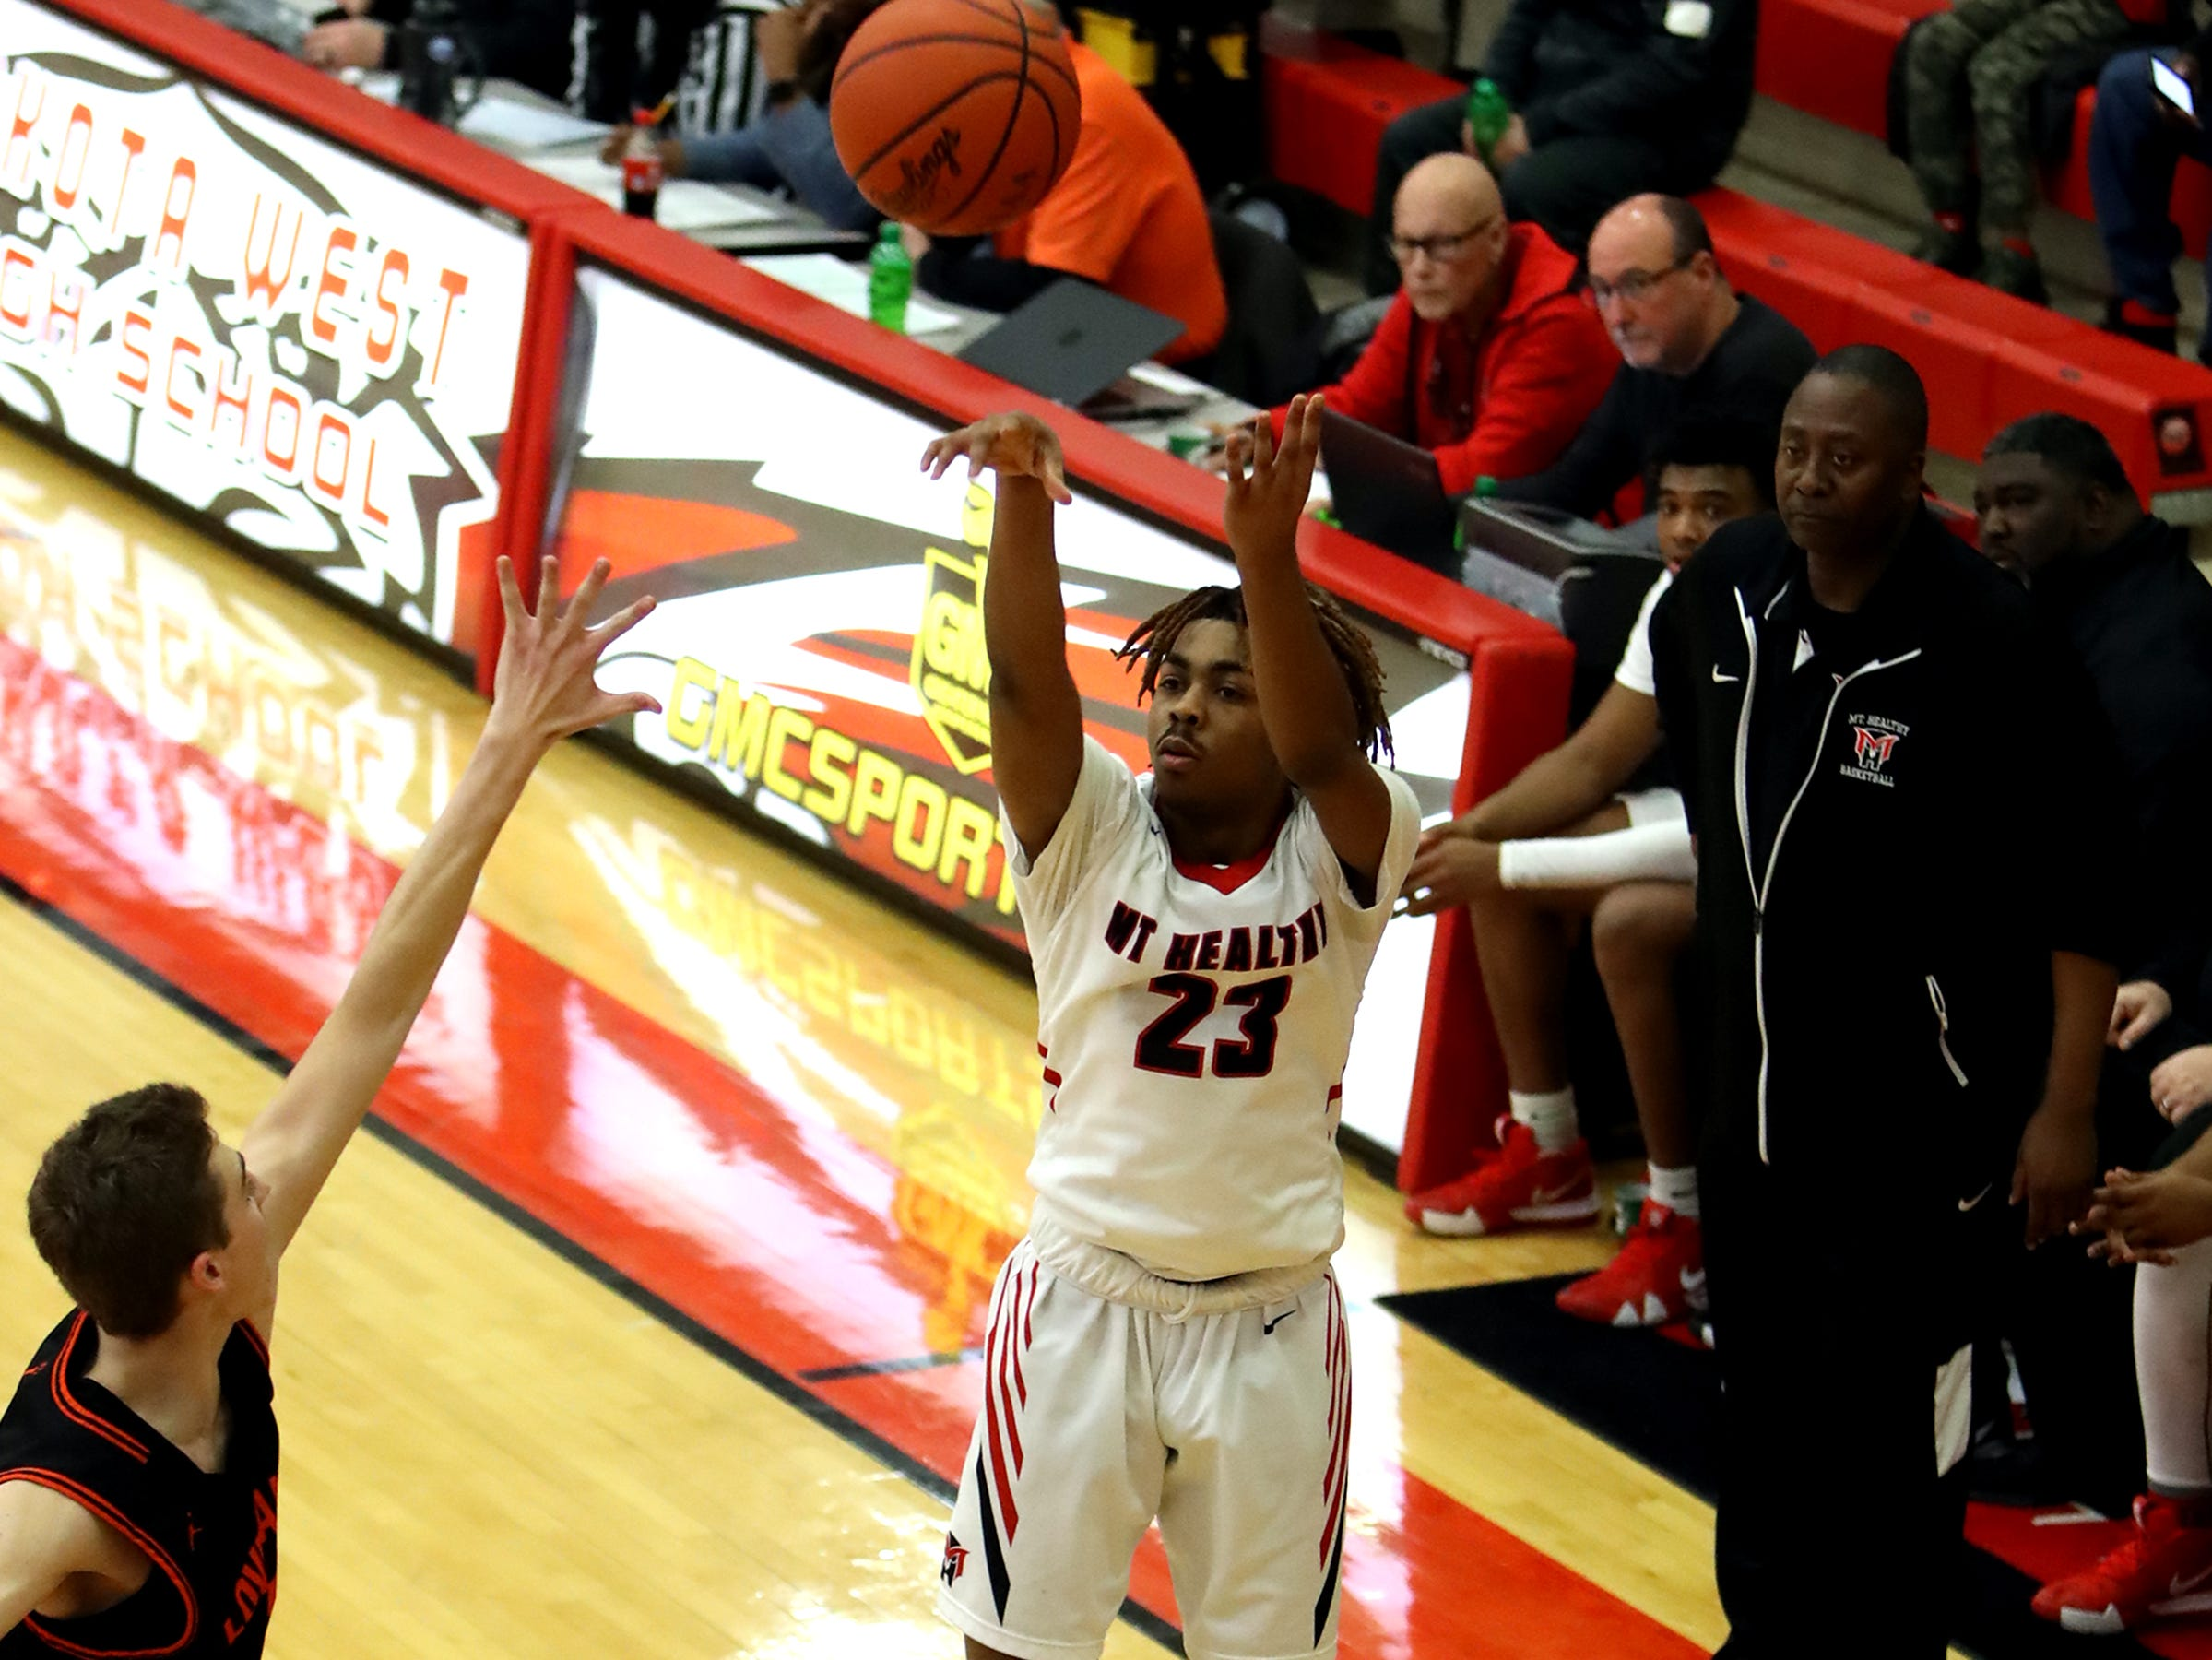 Mount Healthy guard Chris Simmons hits a three-point shot in the sectional playoffs at Lakota West High School Feb. 23, 2019. Mount Healthy defeated Loveland 62-57.